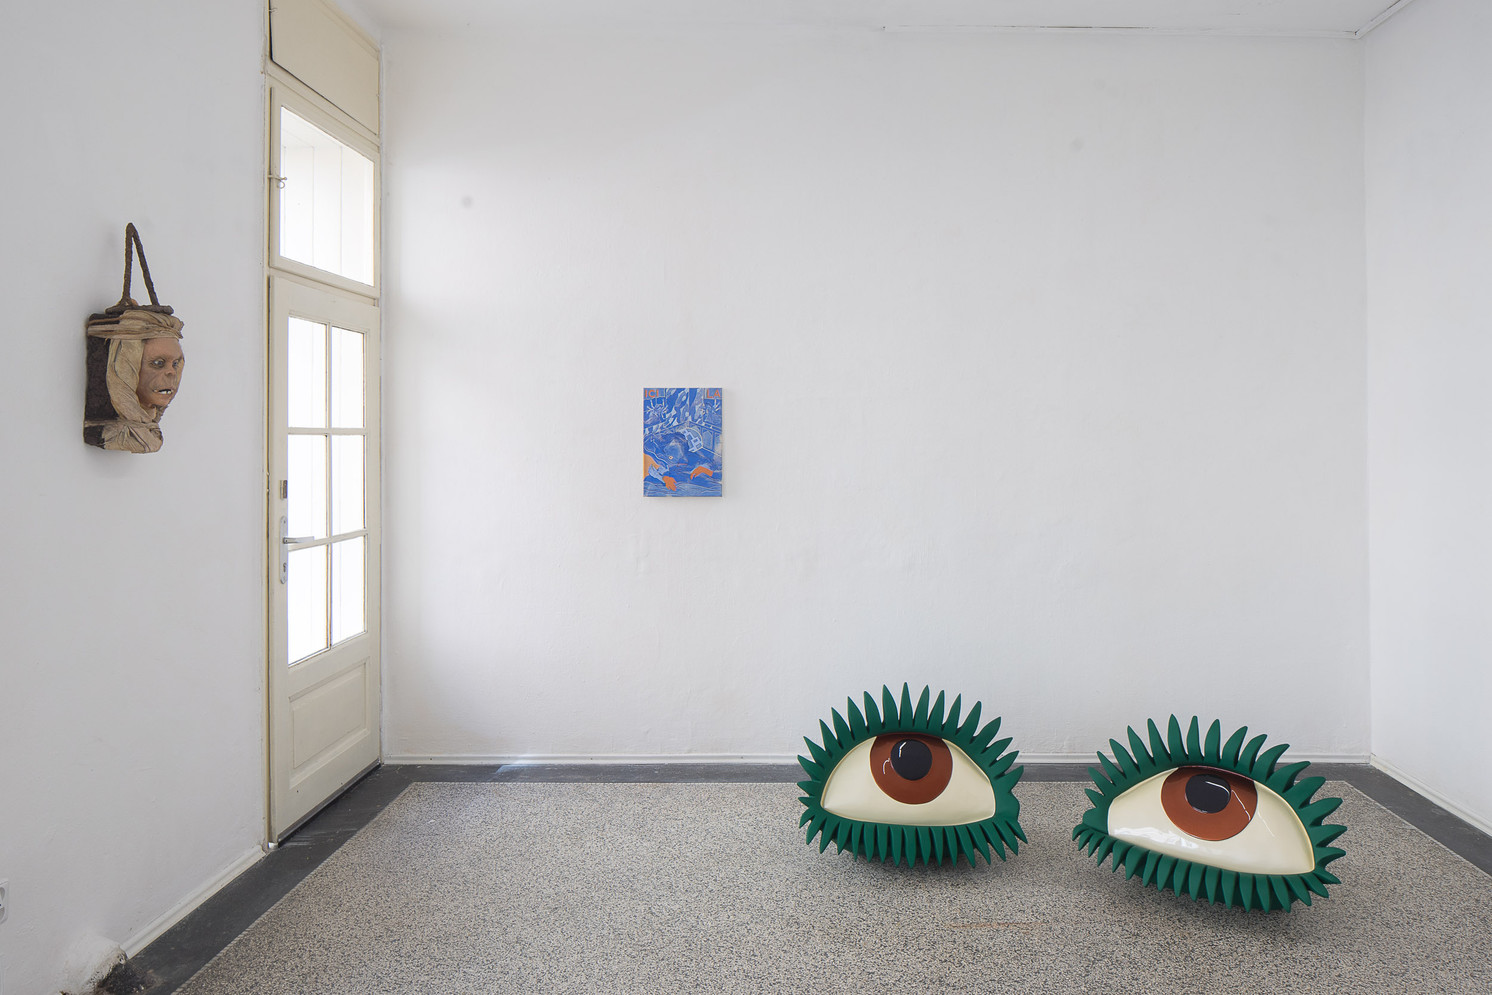 head sculpture, eyes sculpture and painting in a room